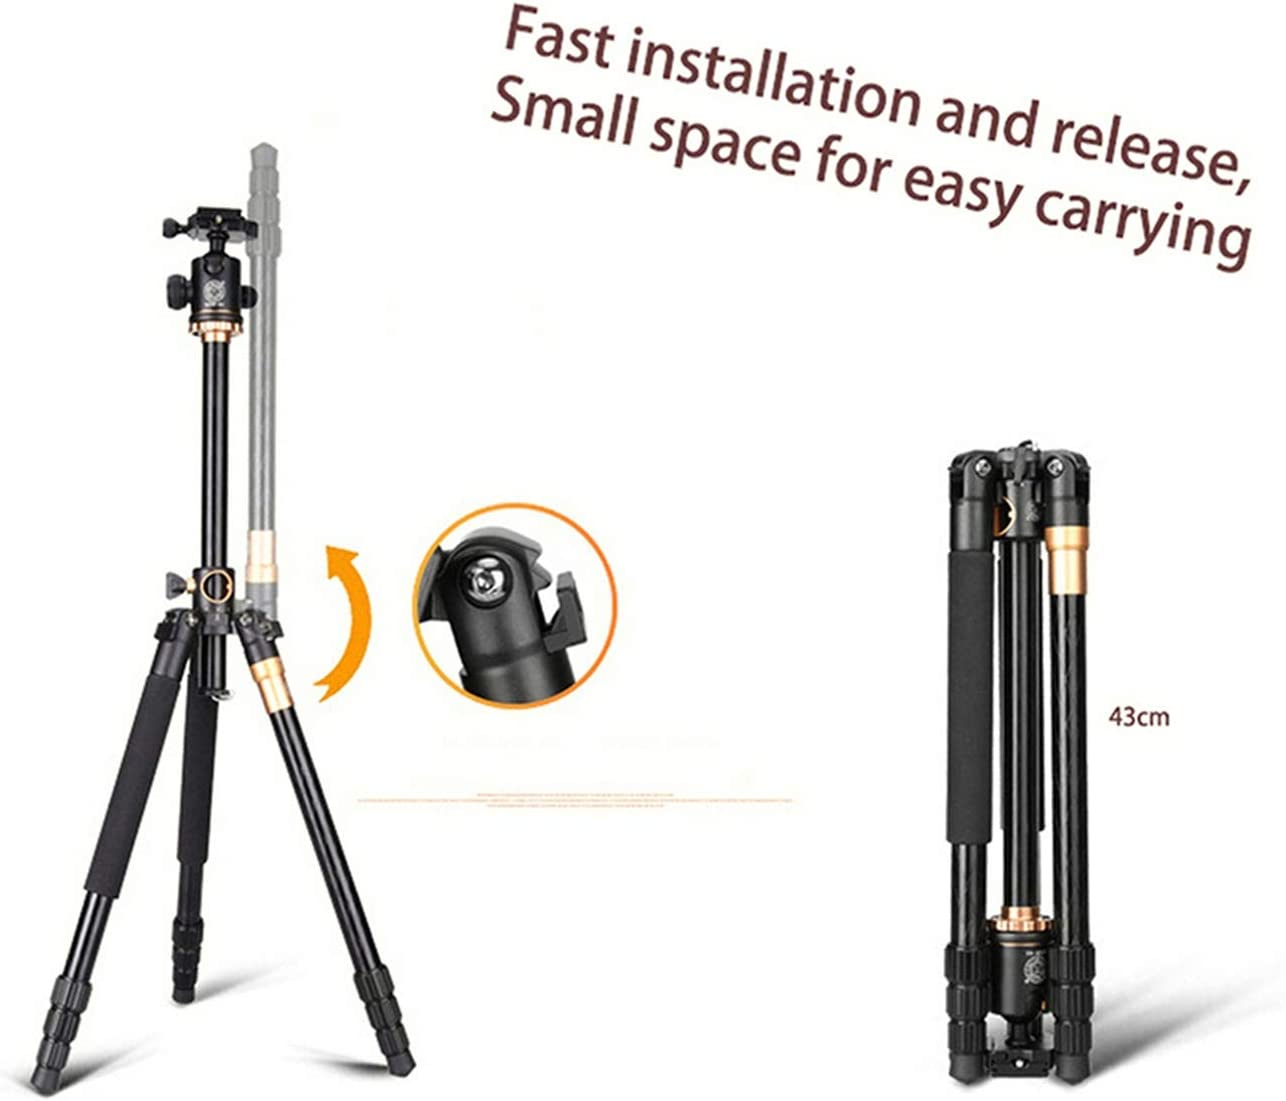 """Color : Black LLluckyHW Outdoor Compact Aluminum Video Camera Tripod Monopod Travel and Work Projectors Tripod Camera Tripod 61/""""Cameras Up to 17 Pounds"""